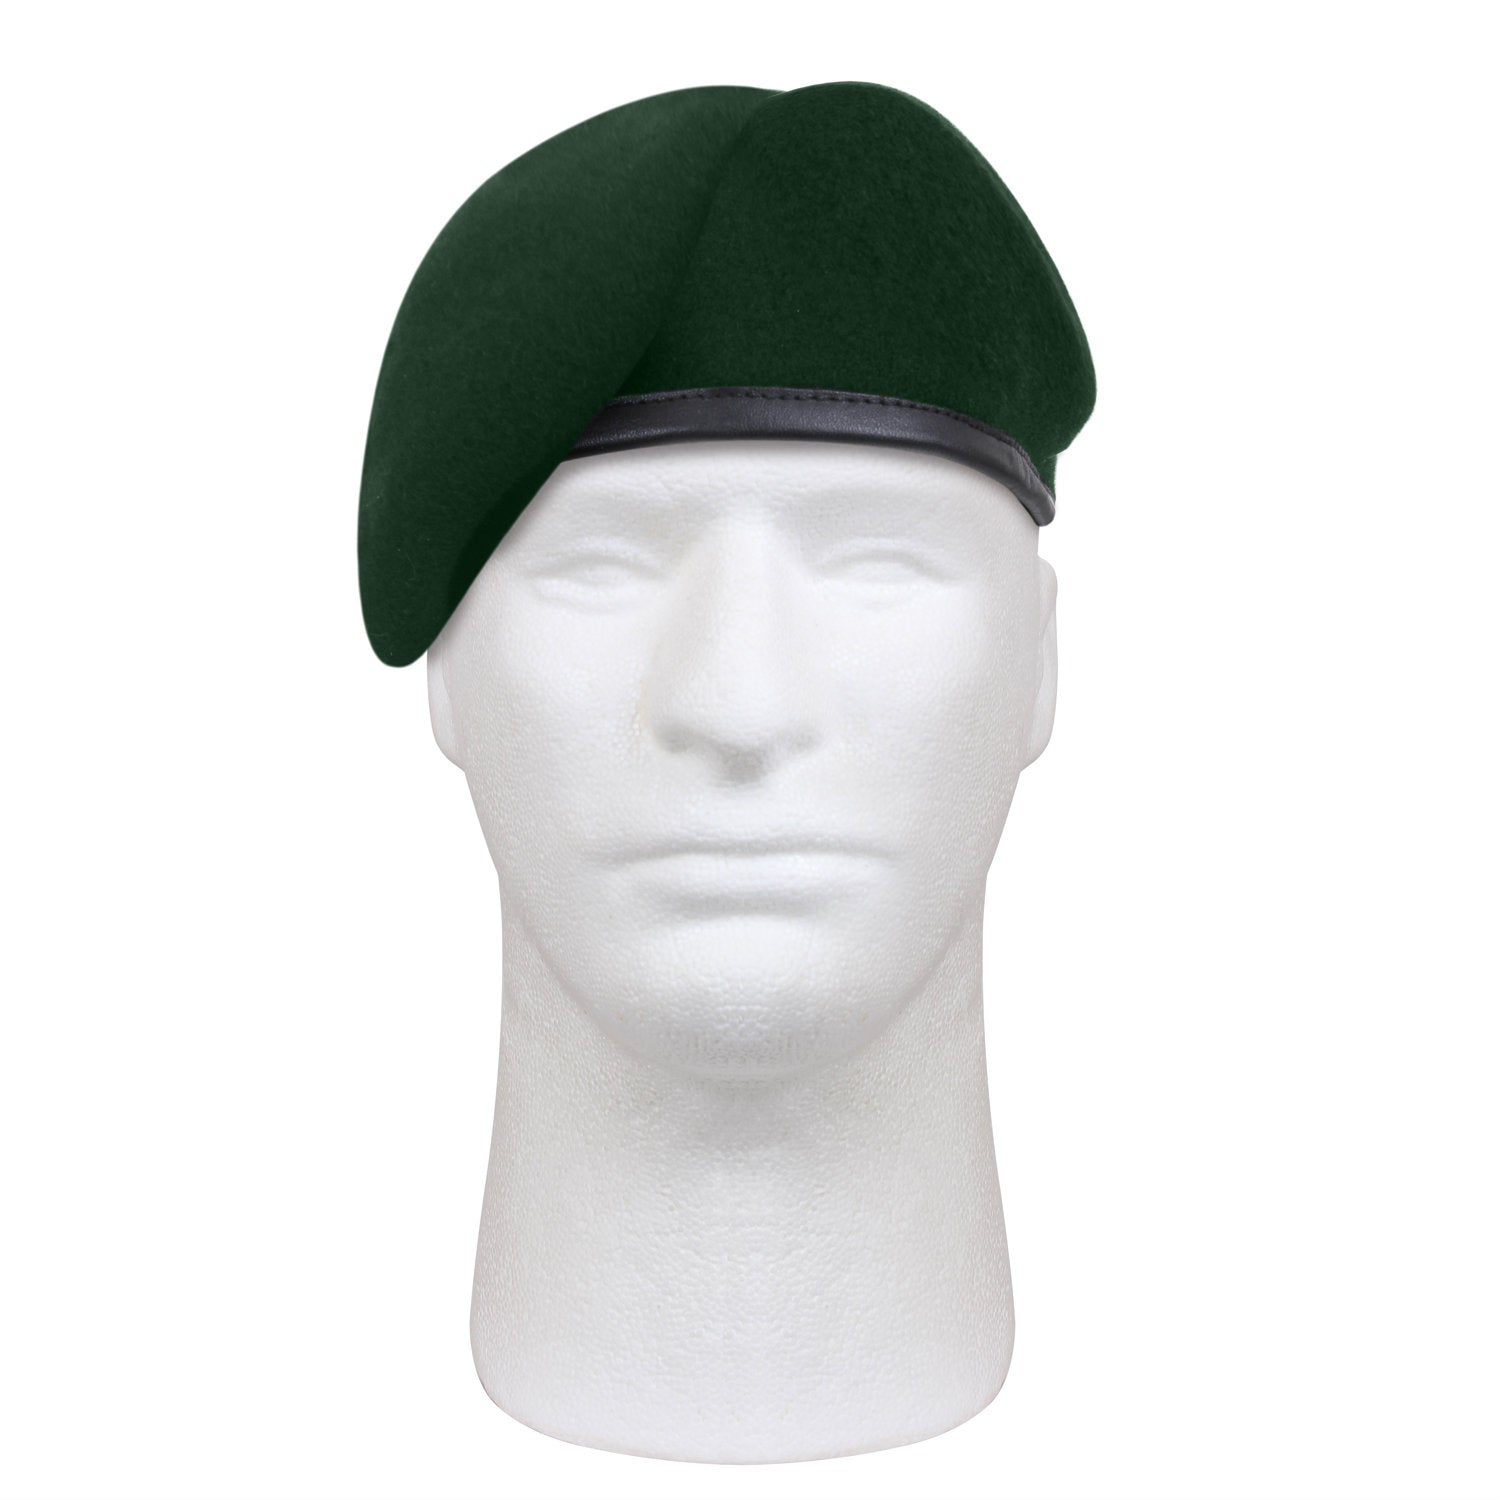 GI Type Inspection Ready Beret Green